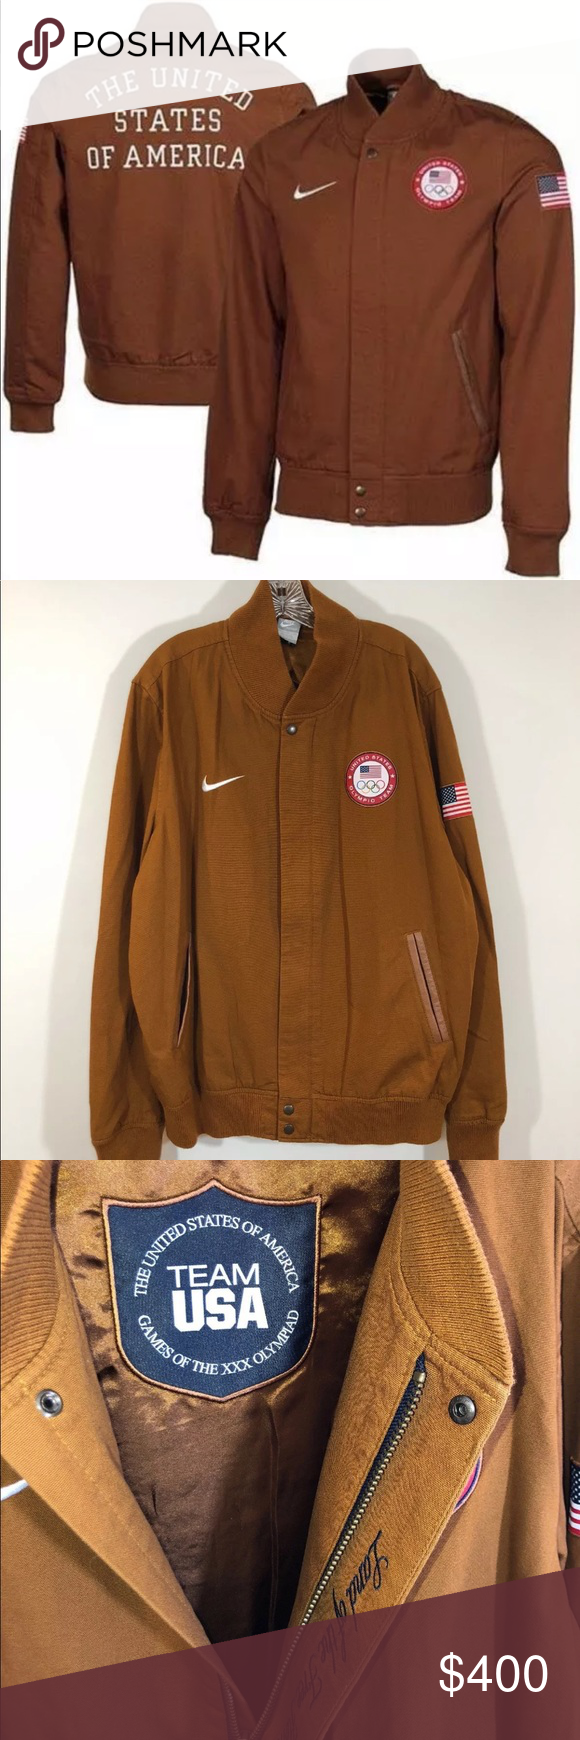 Nike 2012 London Usa Olympic Team Bomber Jacket This Listing Is For A Men S Nike United States 2012 Olympic Team Bomber Ja Clothes Design Bomber Jacket Jackets [ 1740 x 580 Pixel ]